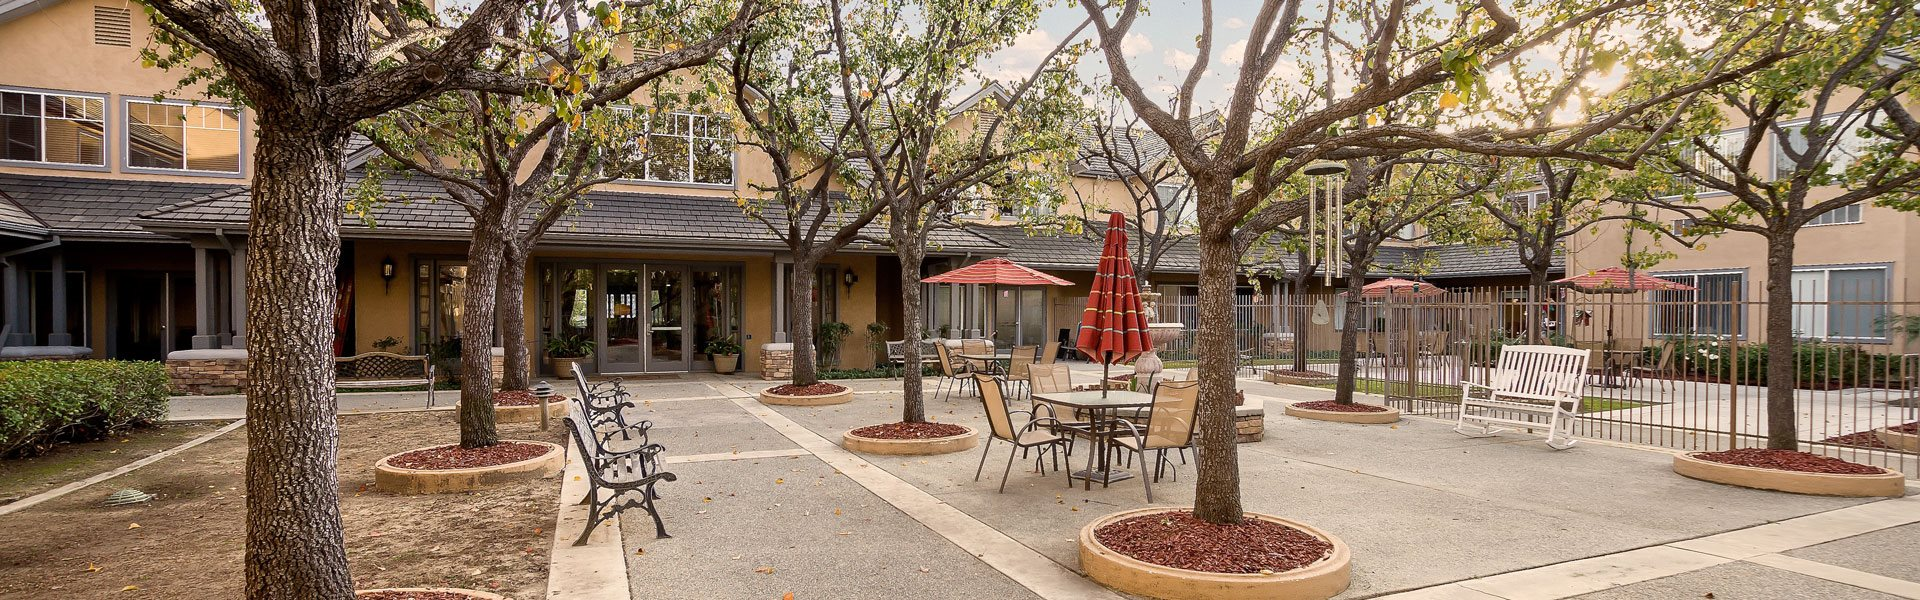 Shade providing trees at Pacifica Senior Living Chino Hills, California